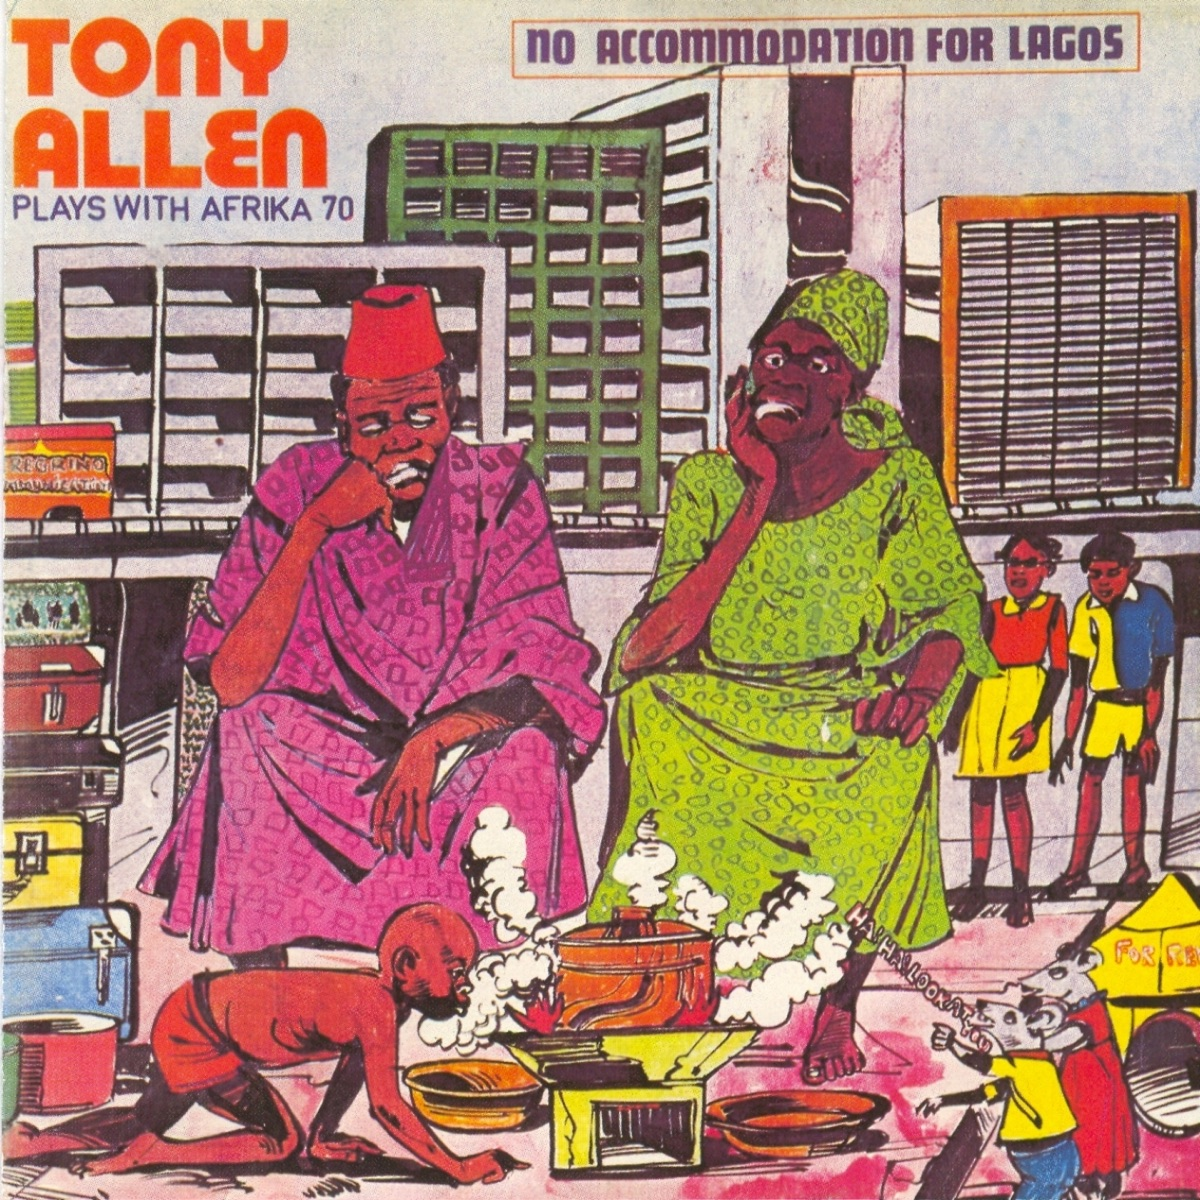 No Accommodation for Lagos - No Discrimination Album Cover by Tony ...